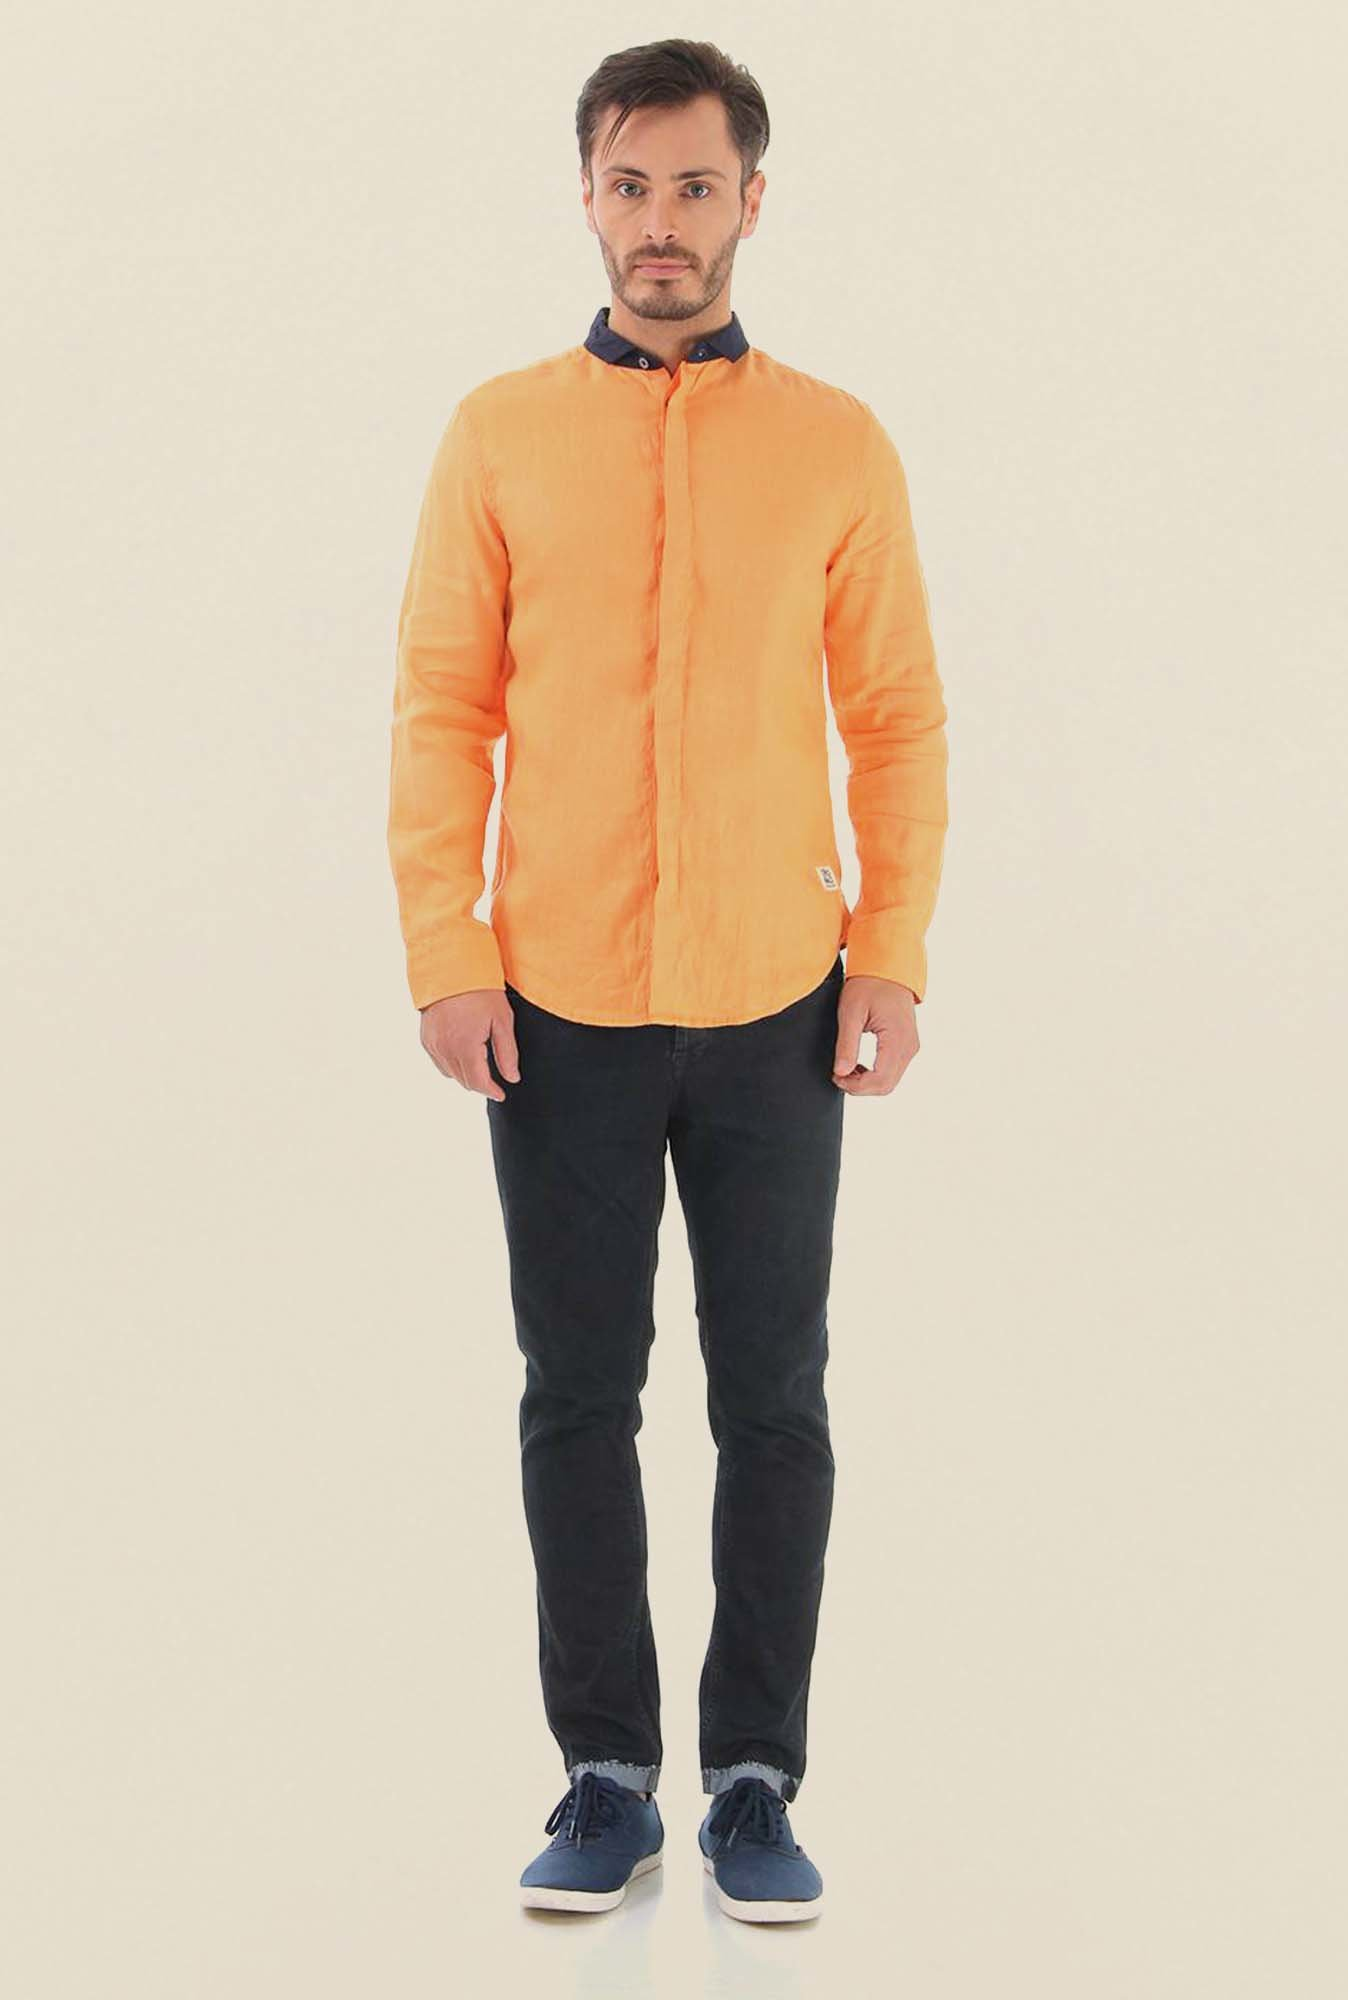 Jack & Jones Orange Solid Cotton Casual Shirt